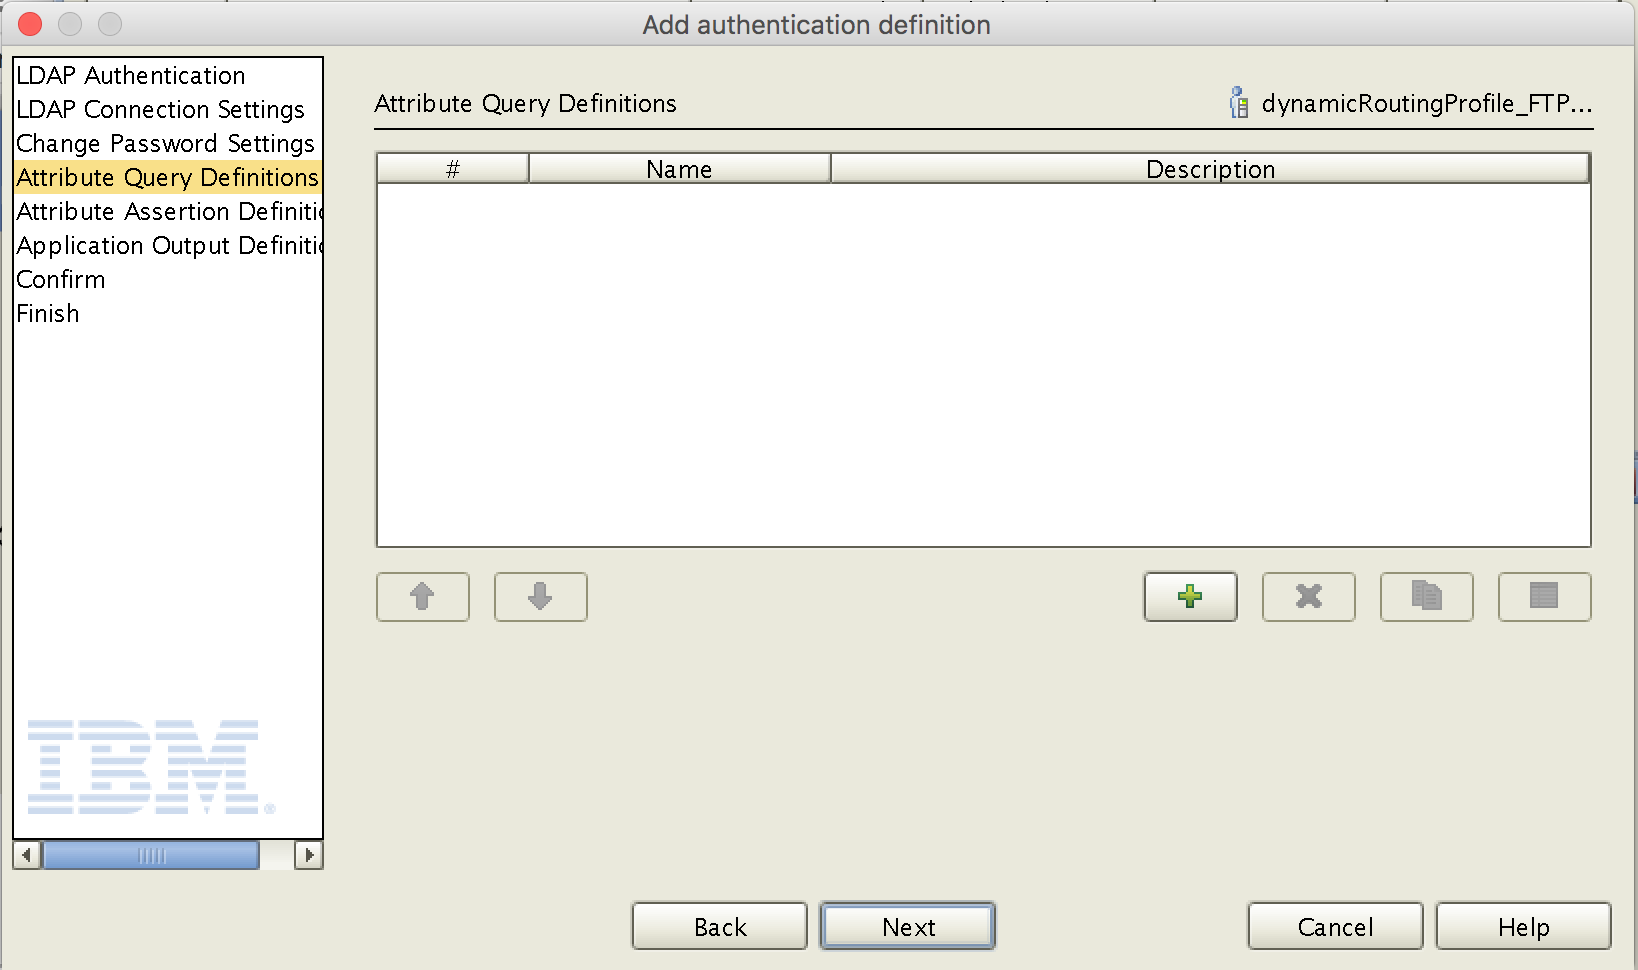 Authentication Definition - Attribute Query Definition